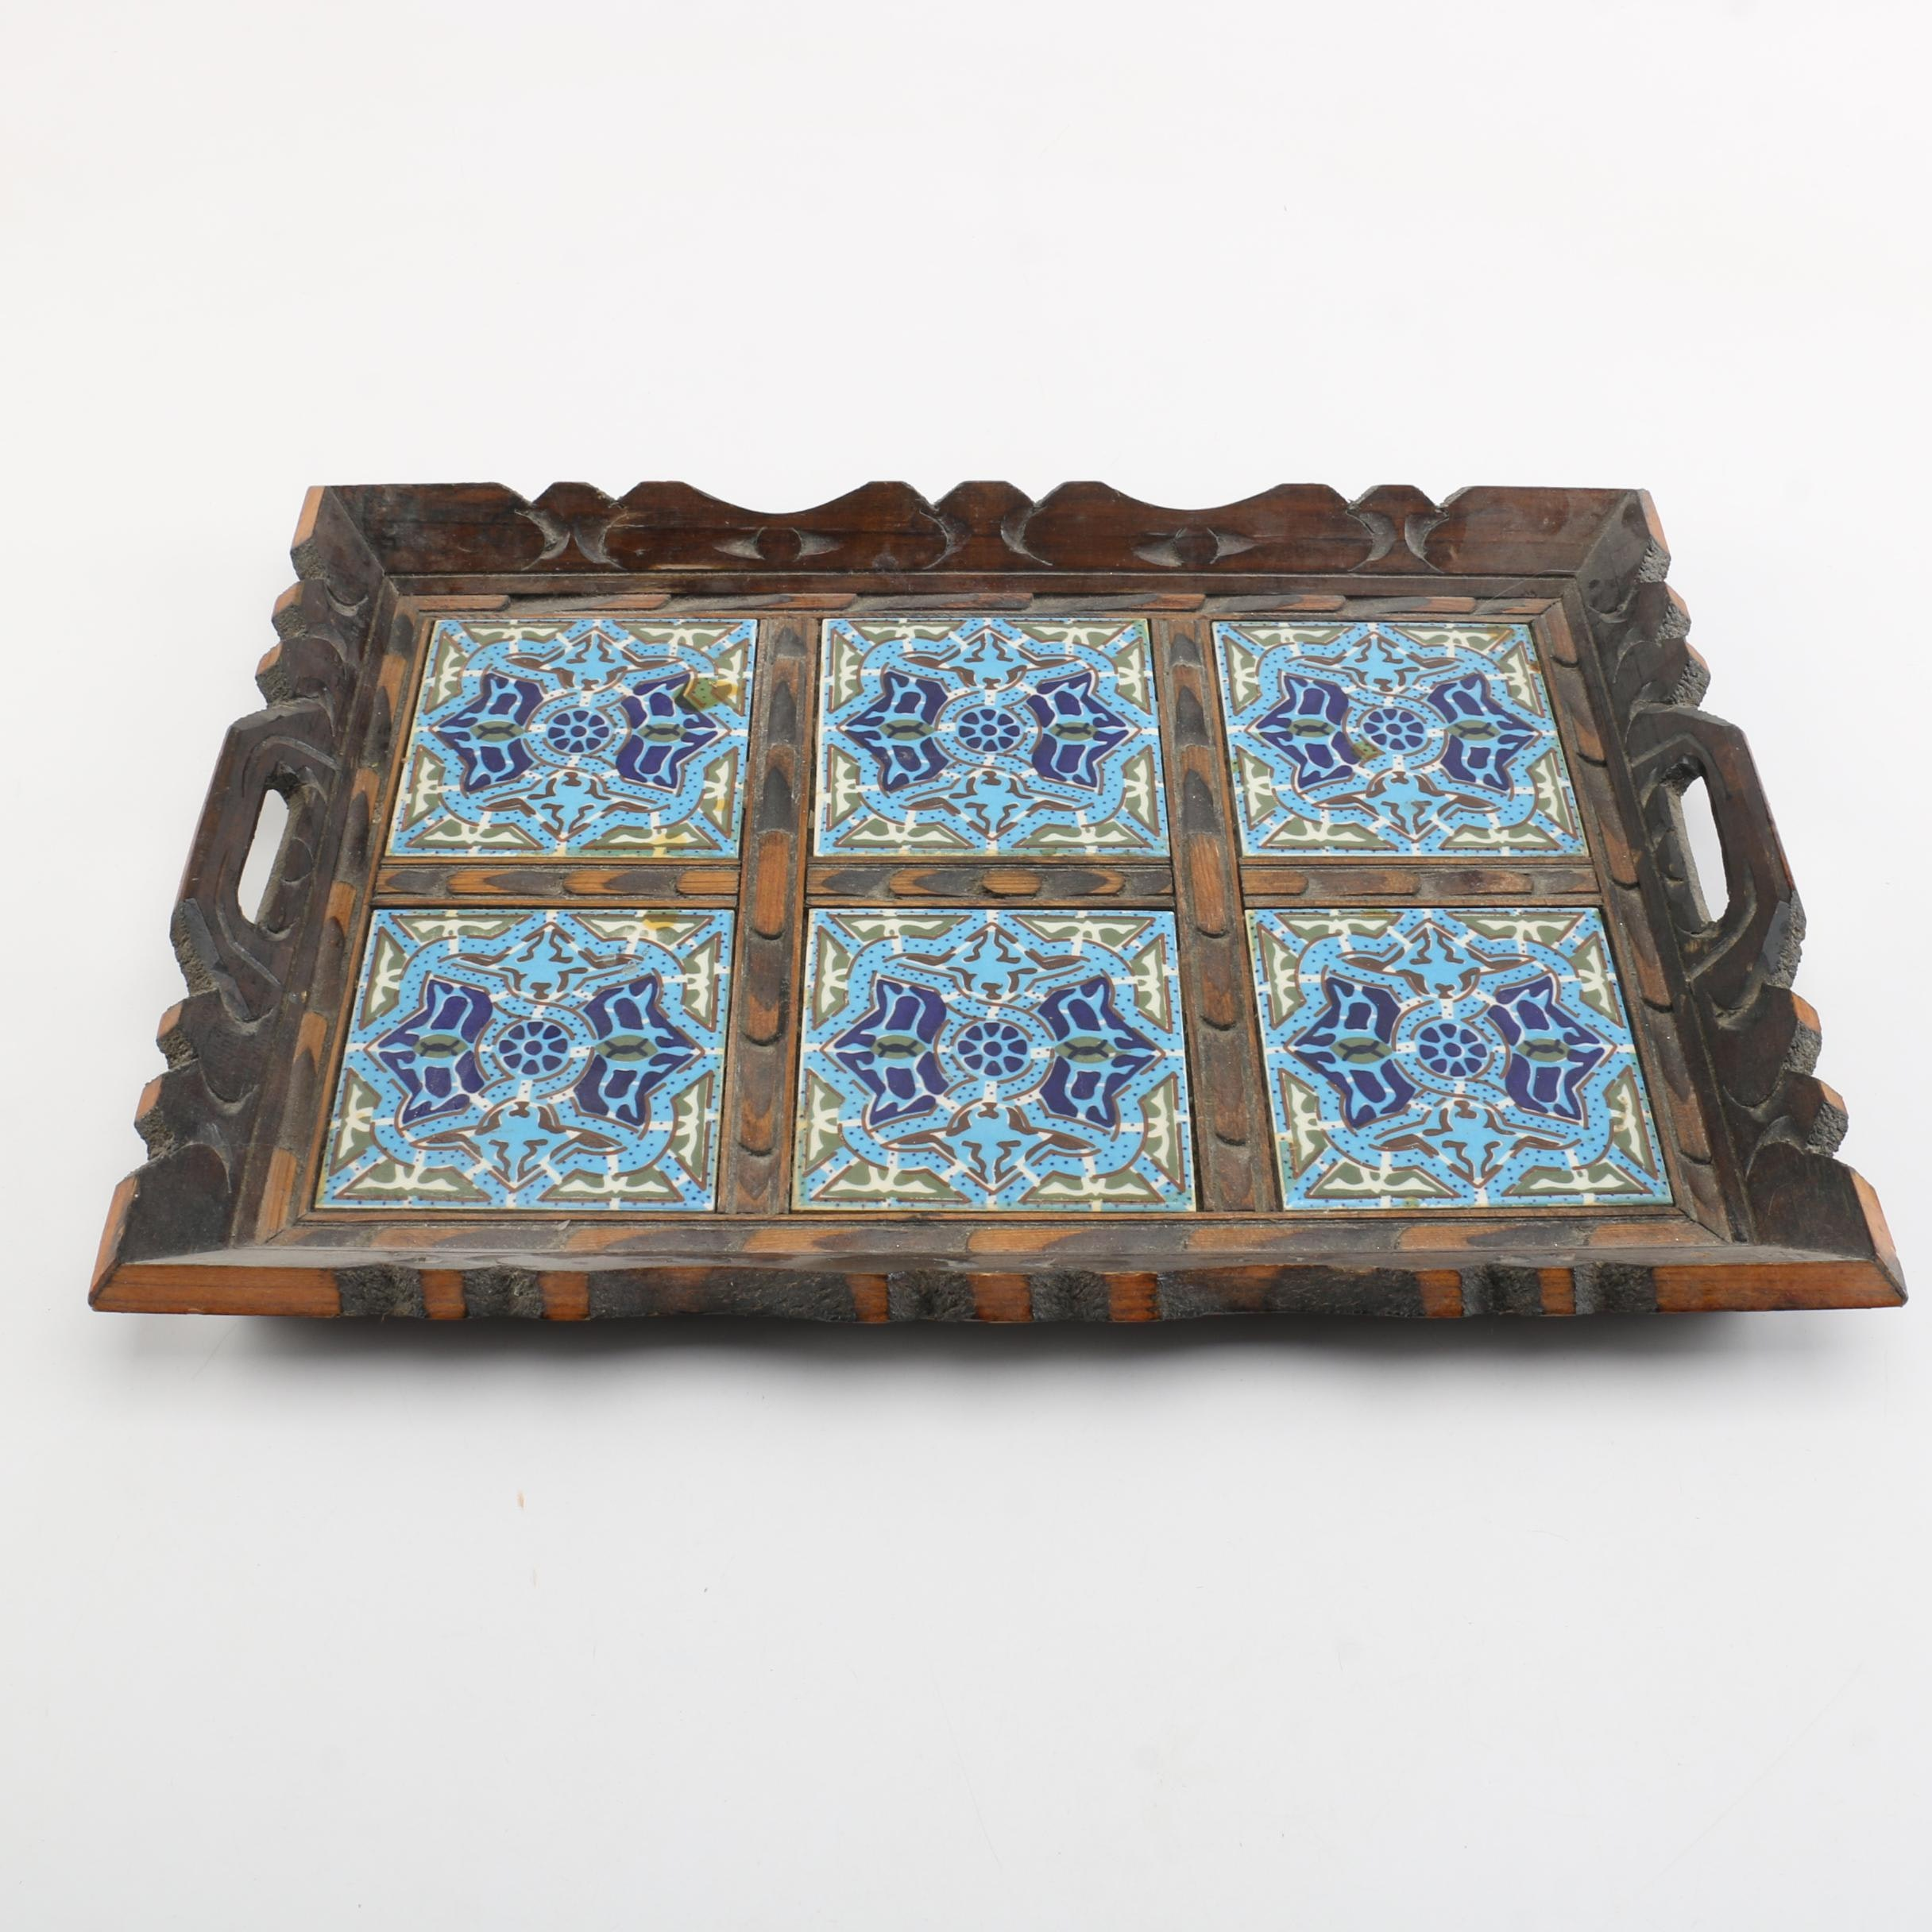 Turkish Style Wooden Tray with Decorative Ceramic Inlays